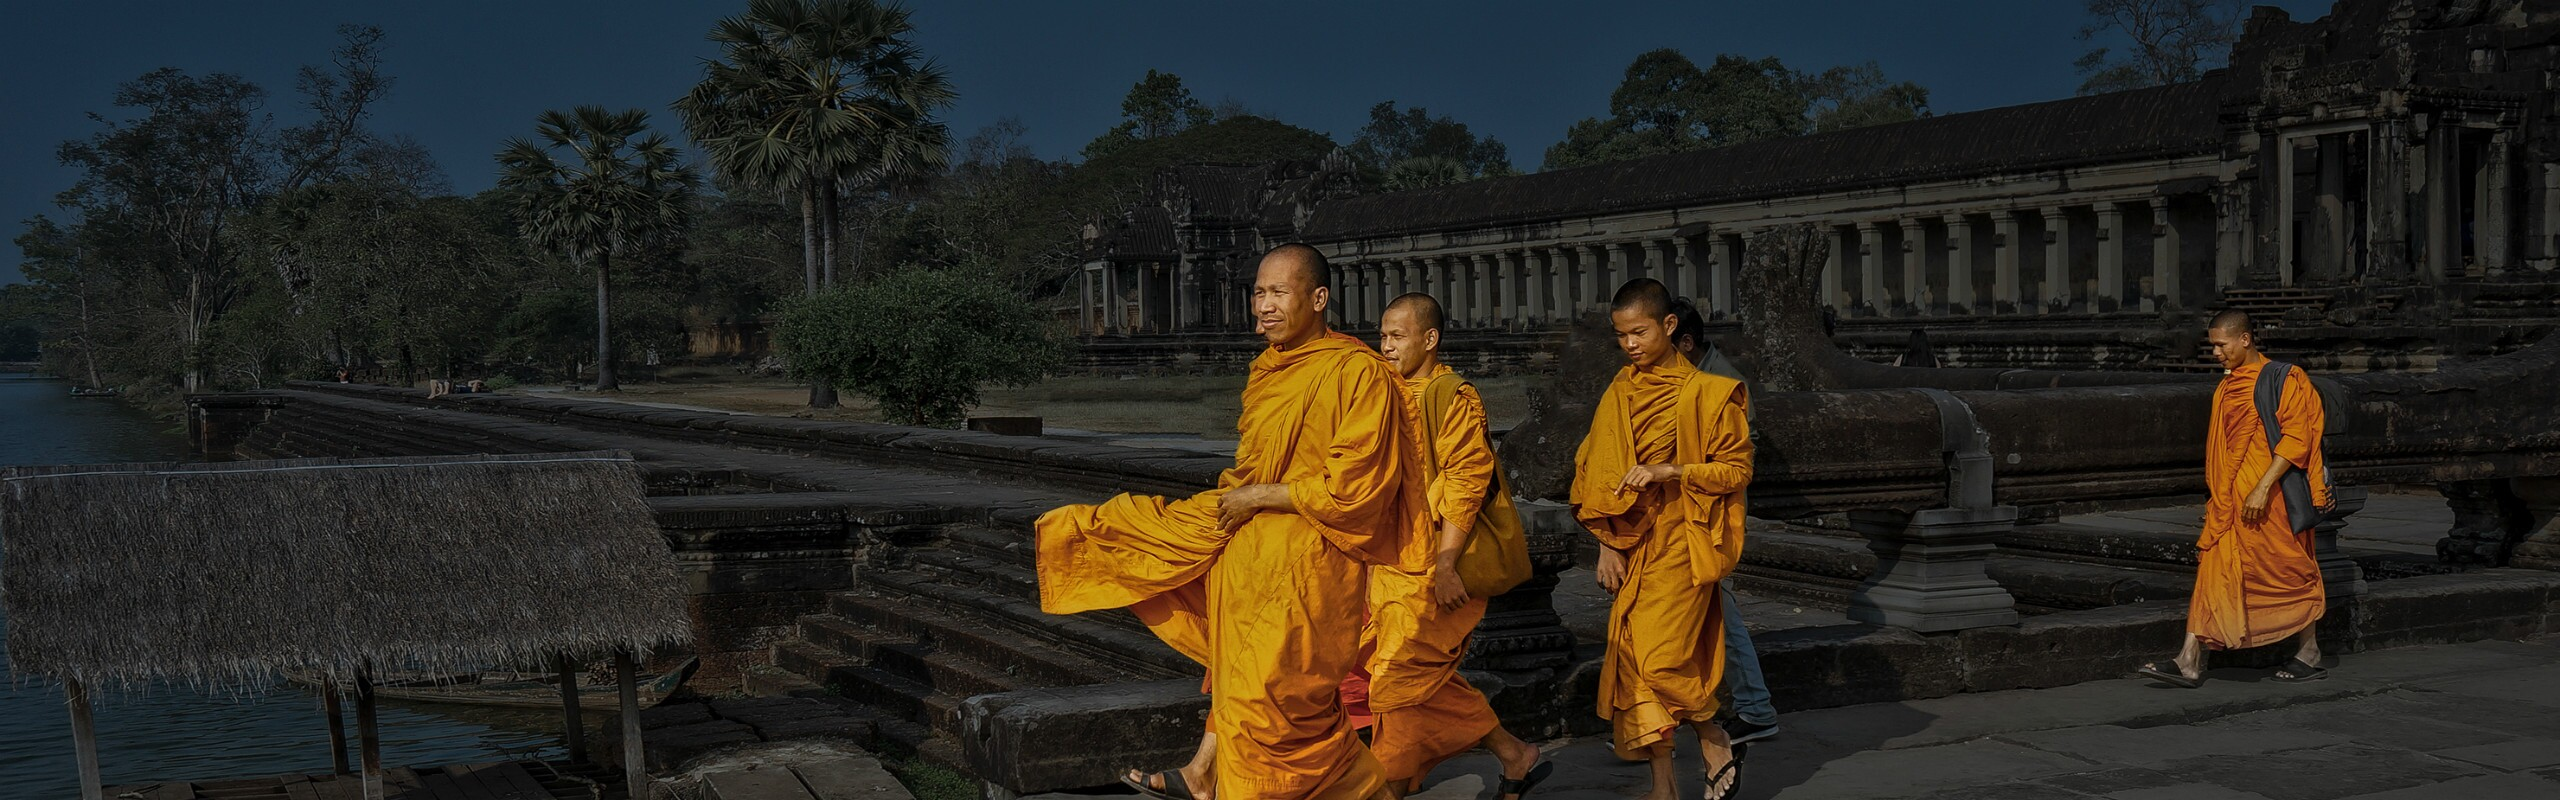 How to Appreciate Your Visit More in Angkor Wat